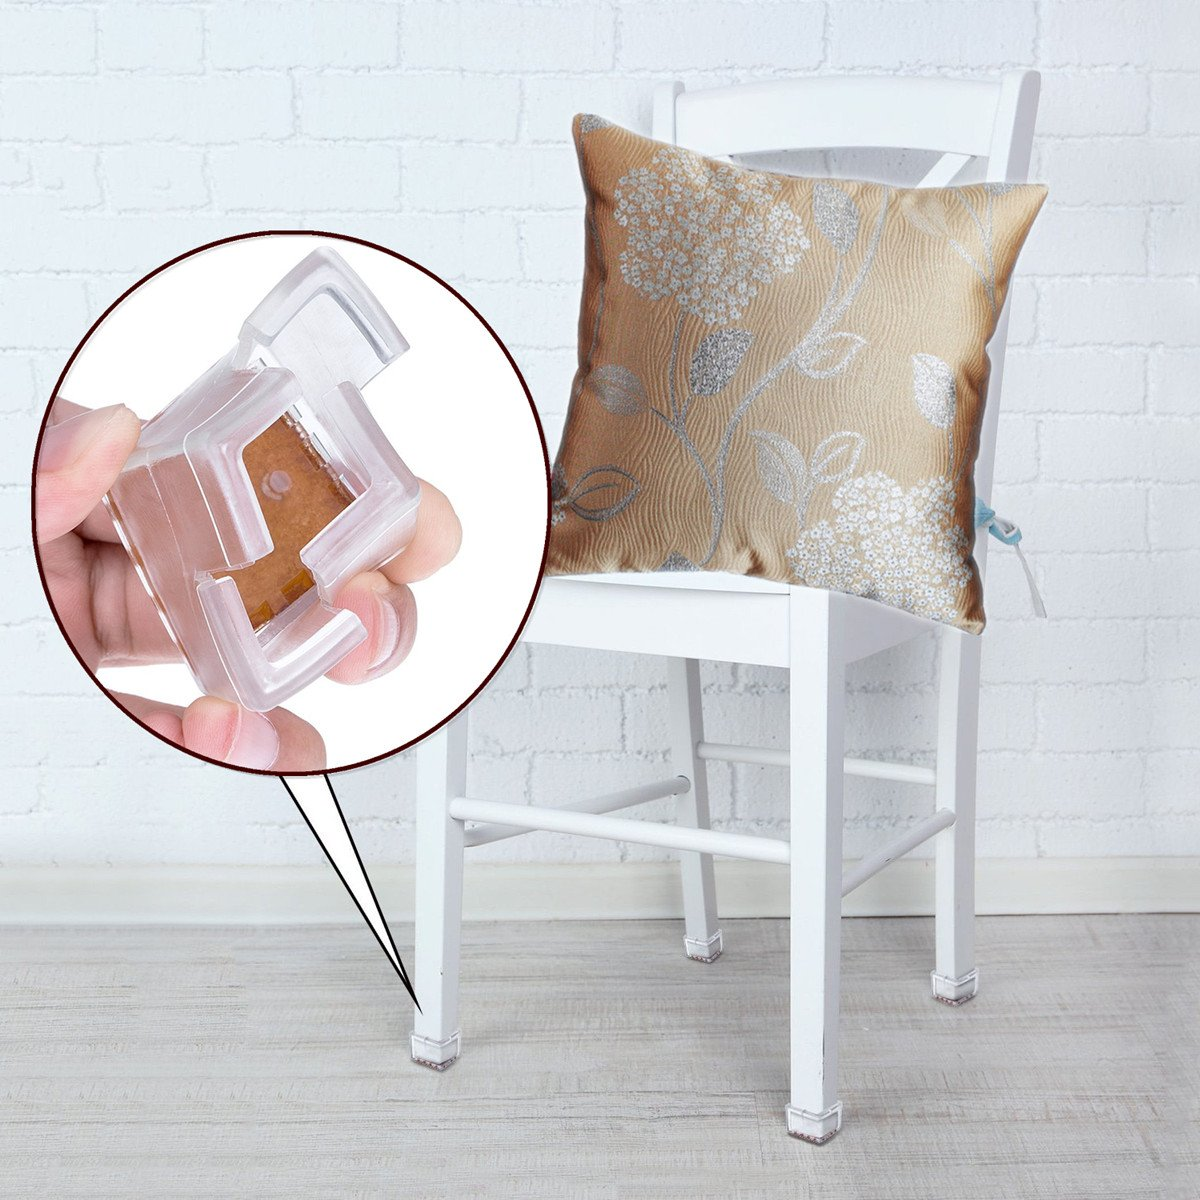 Aibily Silicone Chair Leg Caps Furniture Leg Covers Caps Transparent Chair Leg Pads with Felt Table Feet Protectors for Home/Office Furniture 16 Pack, Fit Square Length 1-1/4 to 1-3/8 inch